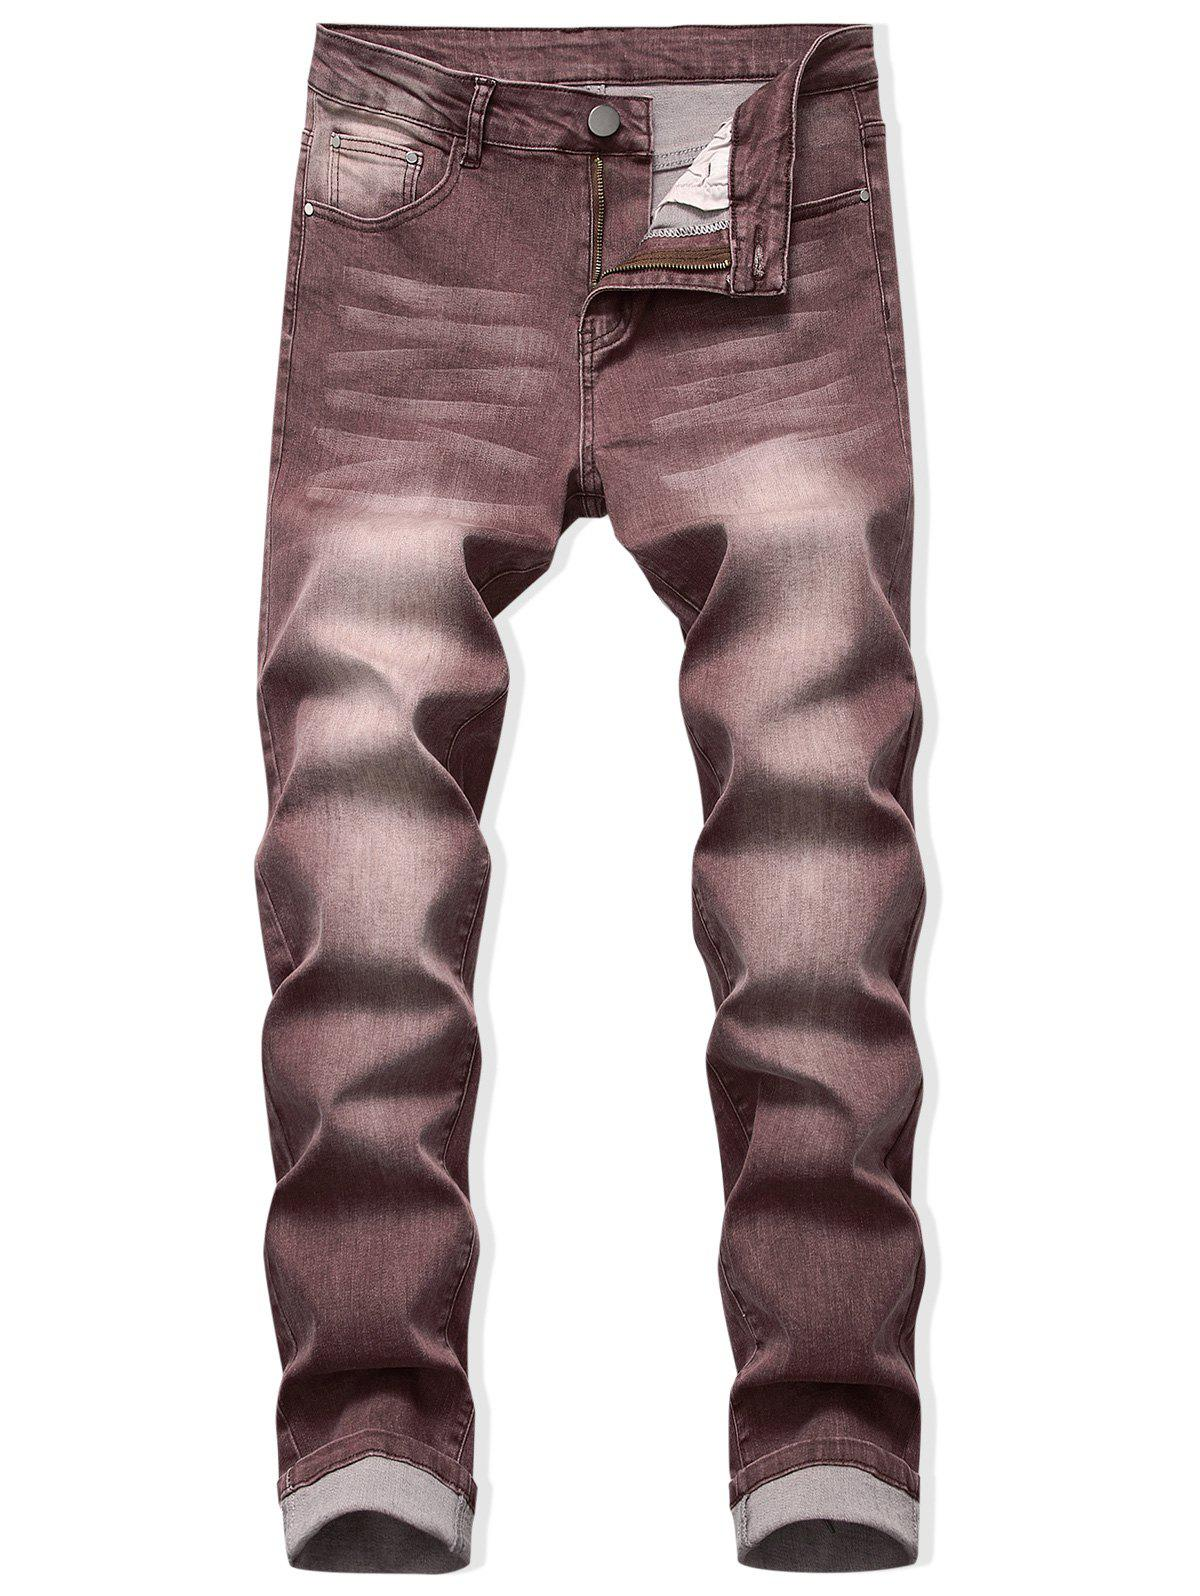 Zip Fly Long Faded Wash Casual Jeans - DEEP COFFEE 42